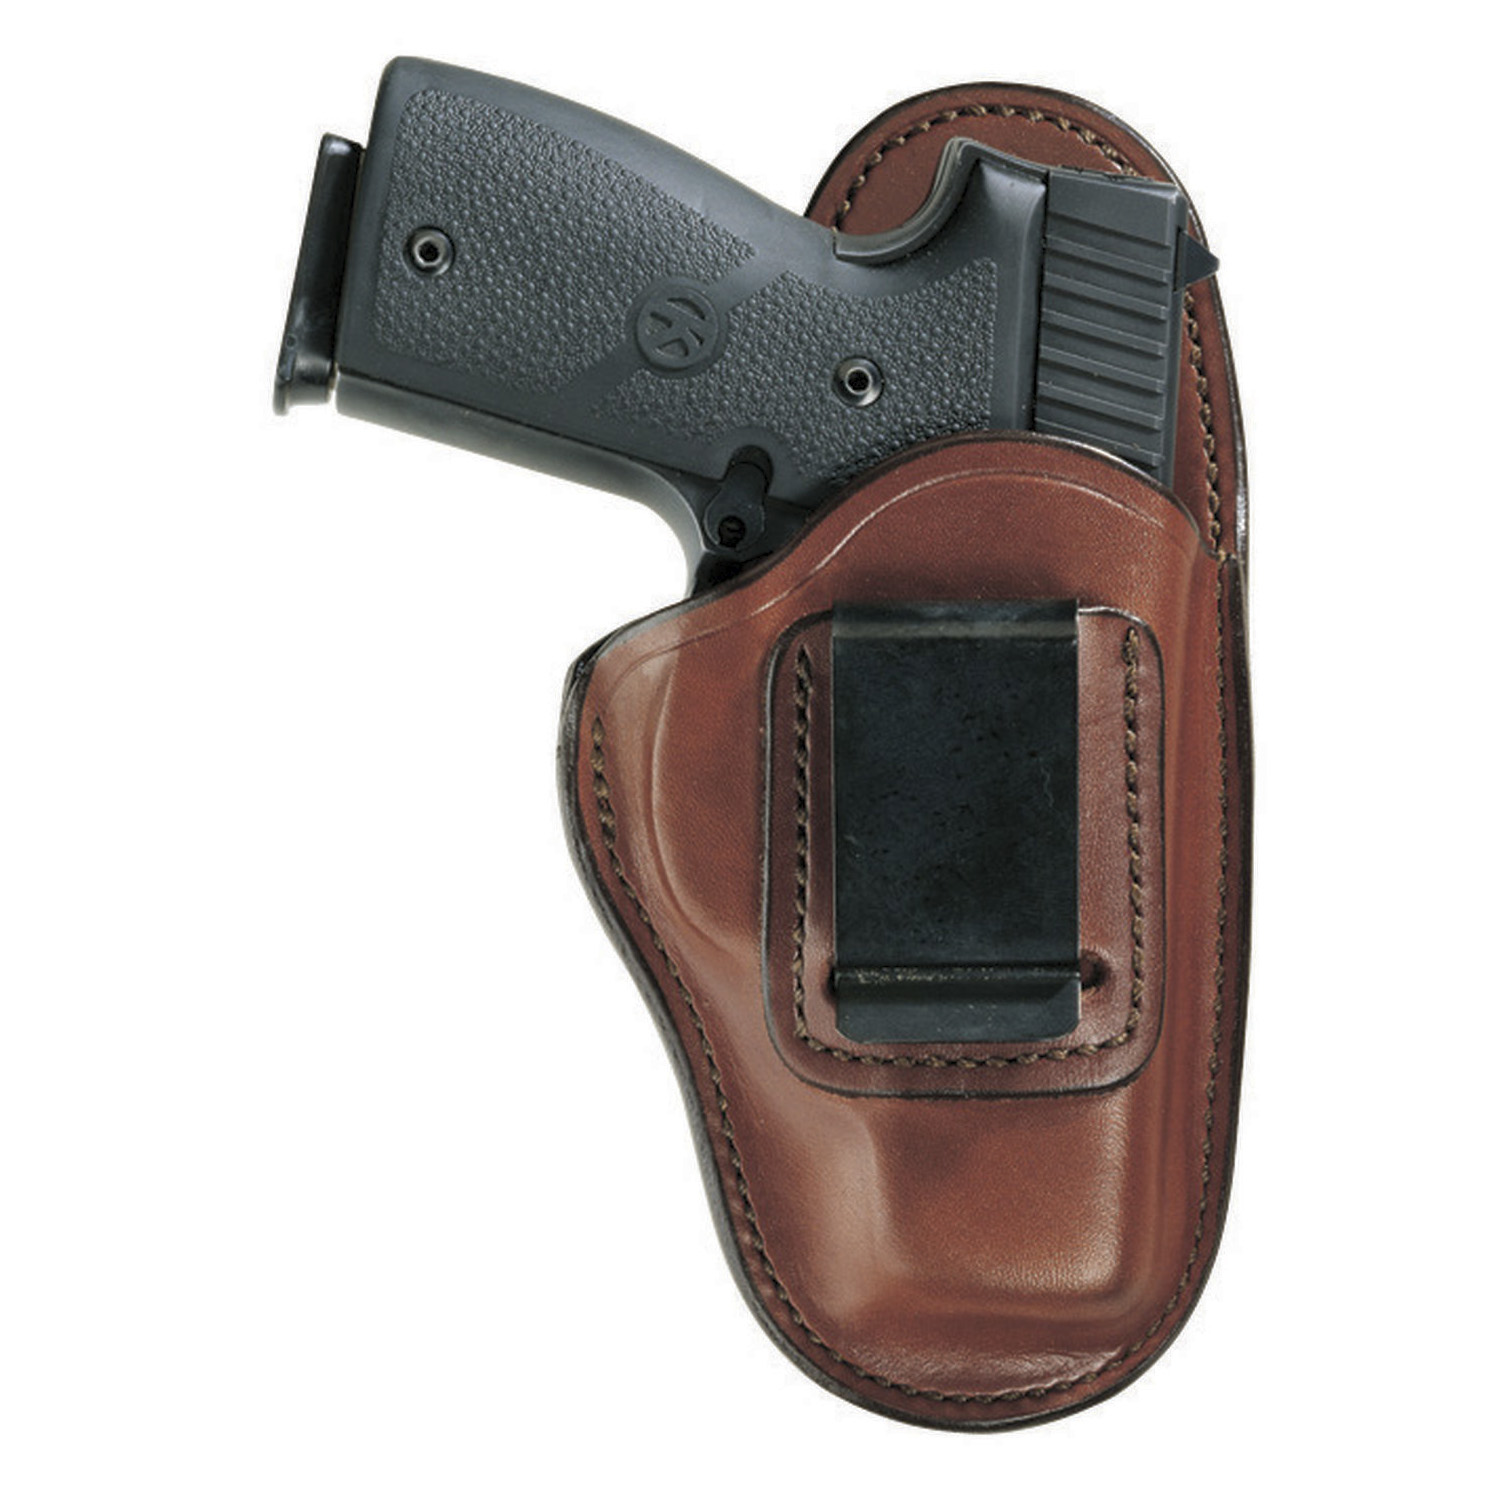 Bianchi Model 100 Professional Inside Waistband Holster, Ruger LCP/LC9s/LC380